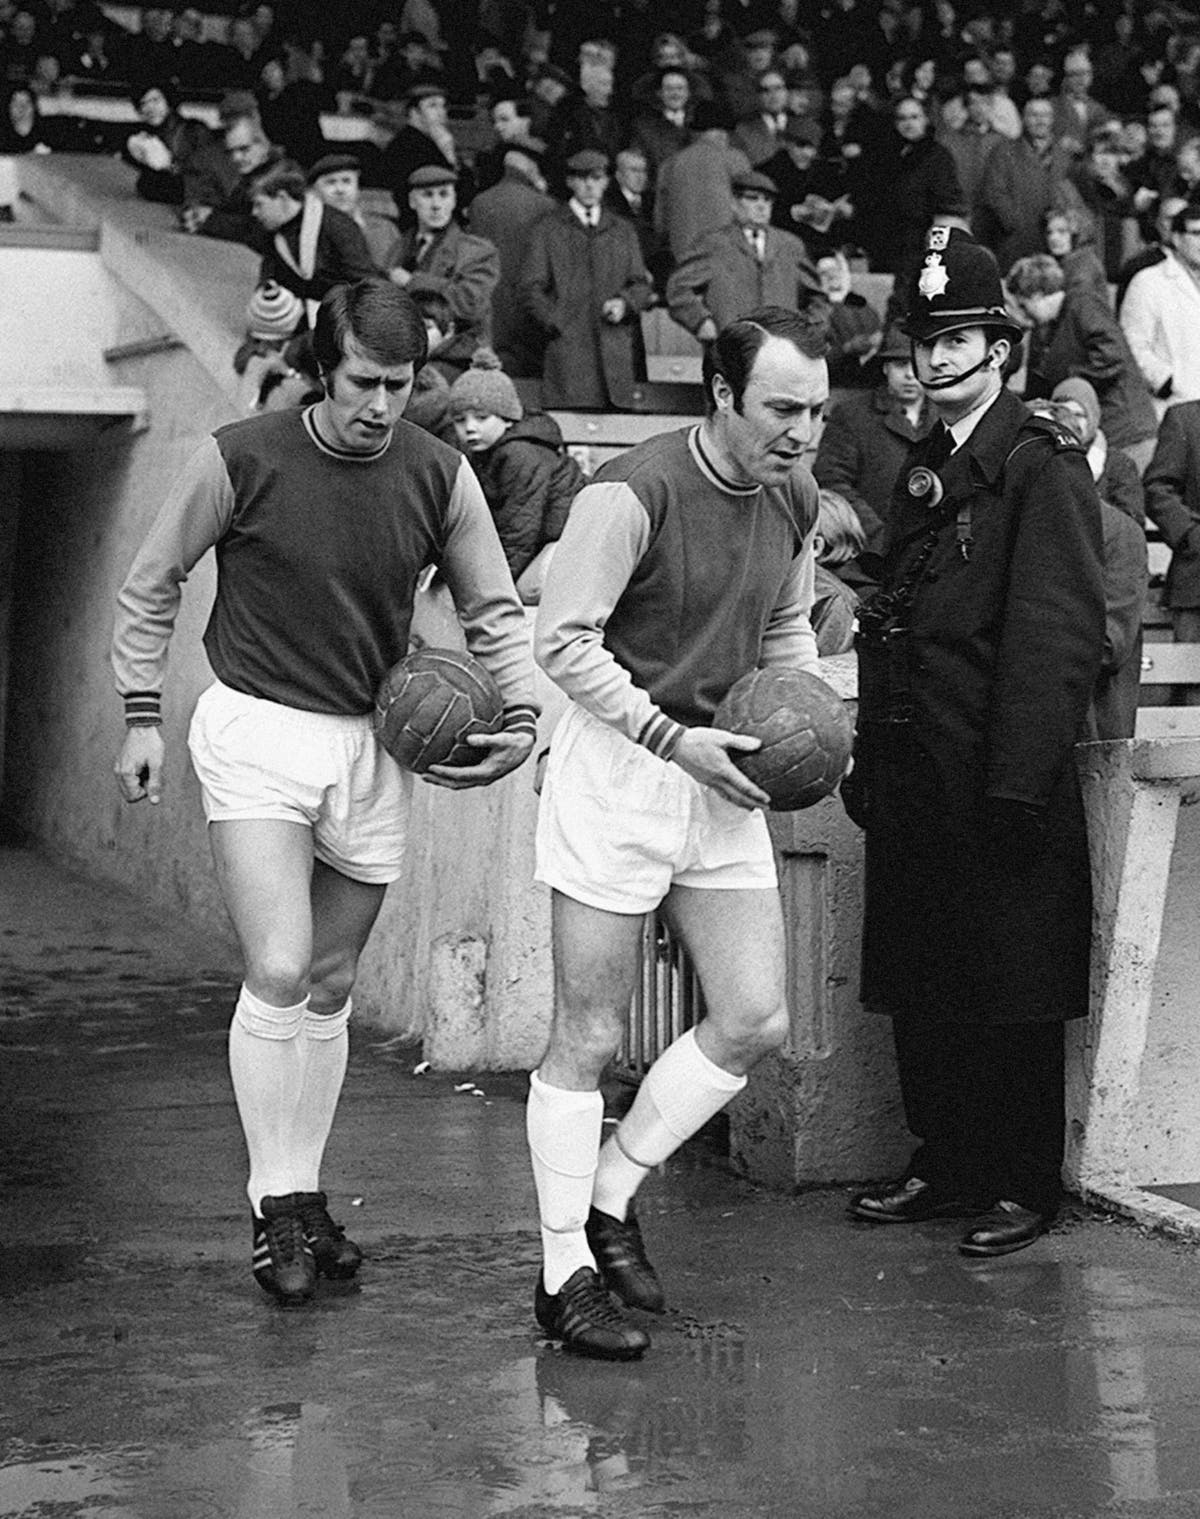 Tottenham, England and West Ham greats lead tributes to Jimmy Greaves